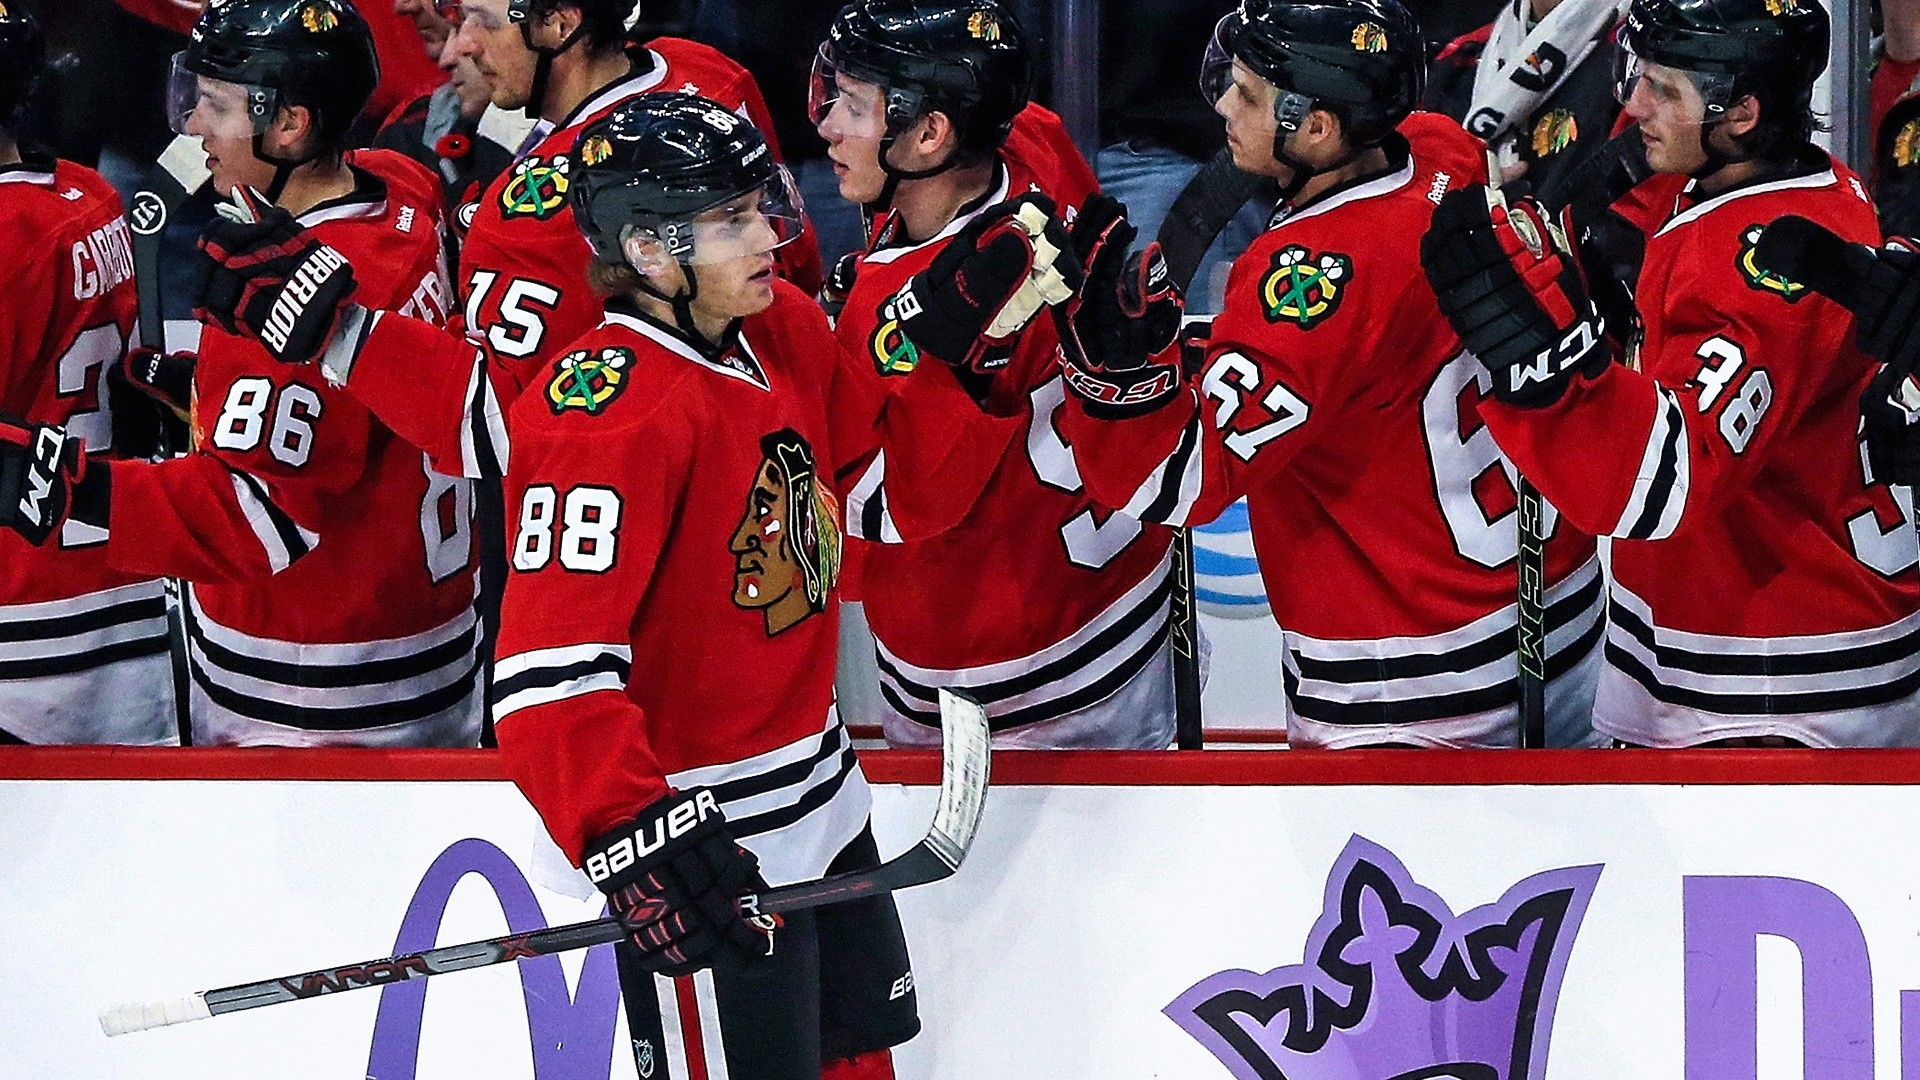 1920x1080 Five things that happened in Chicago sports during Patrick Kane's streak |  Sporting News